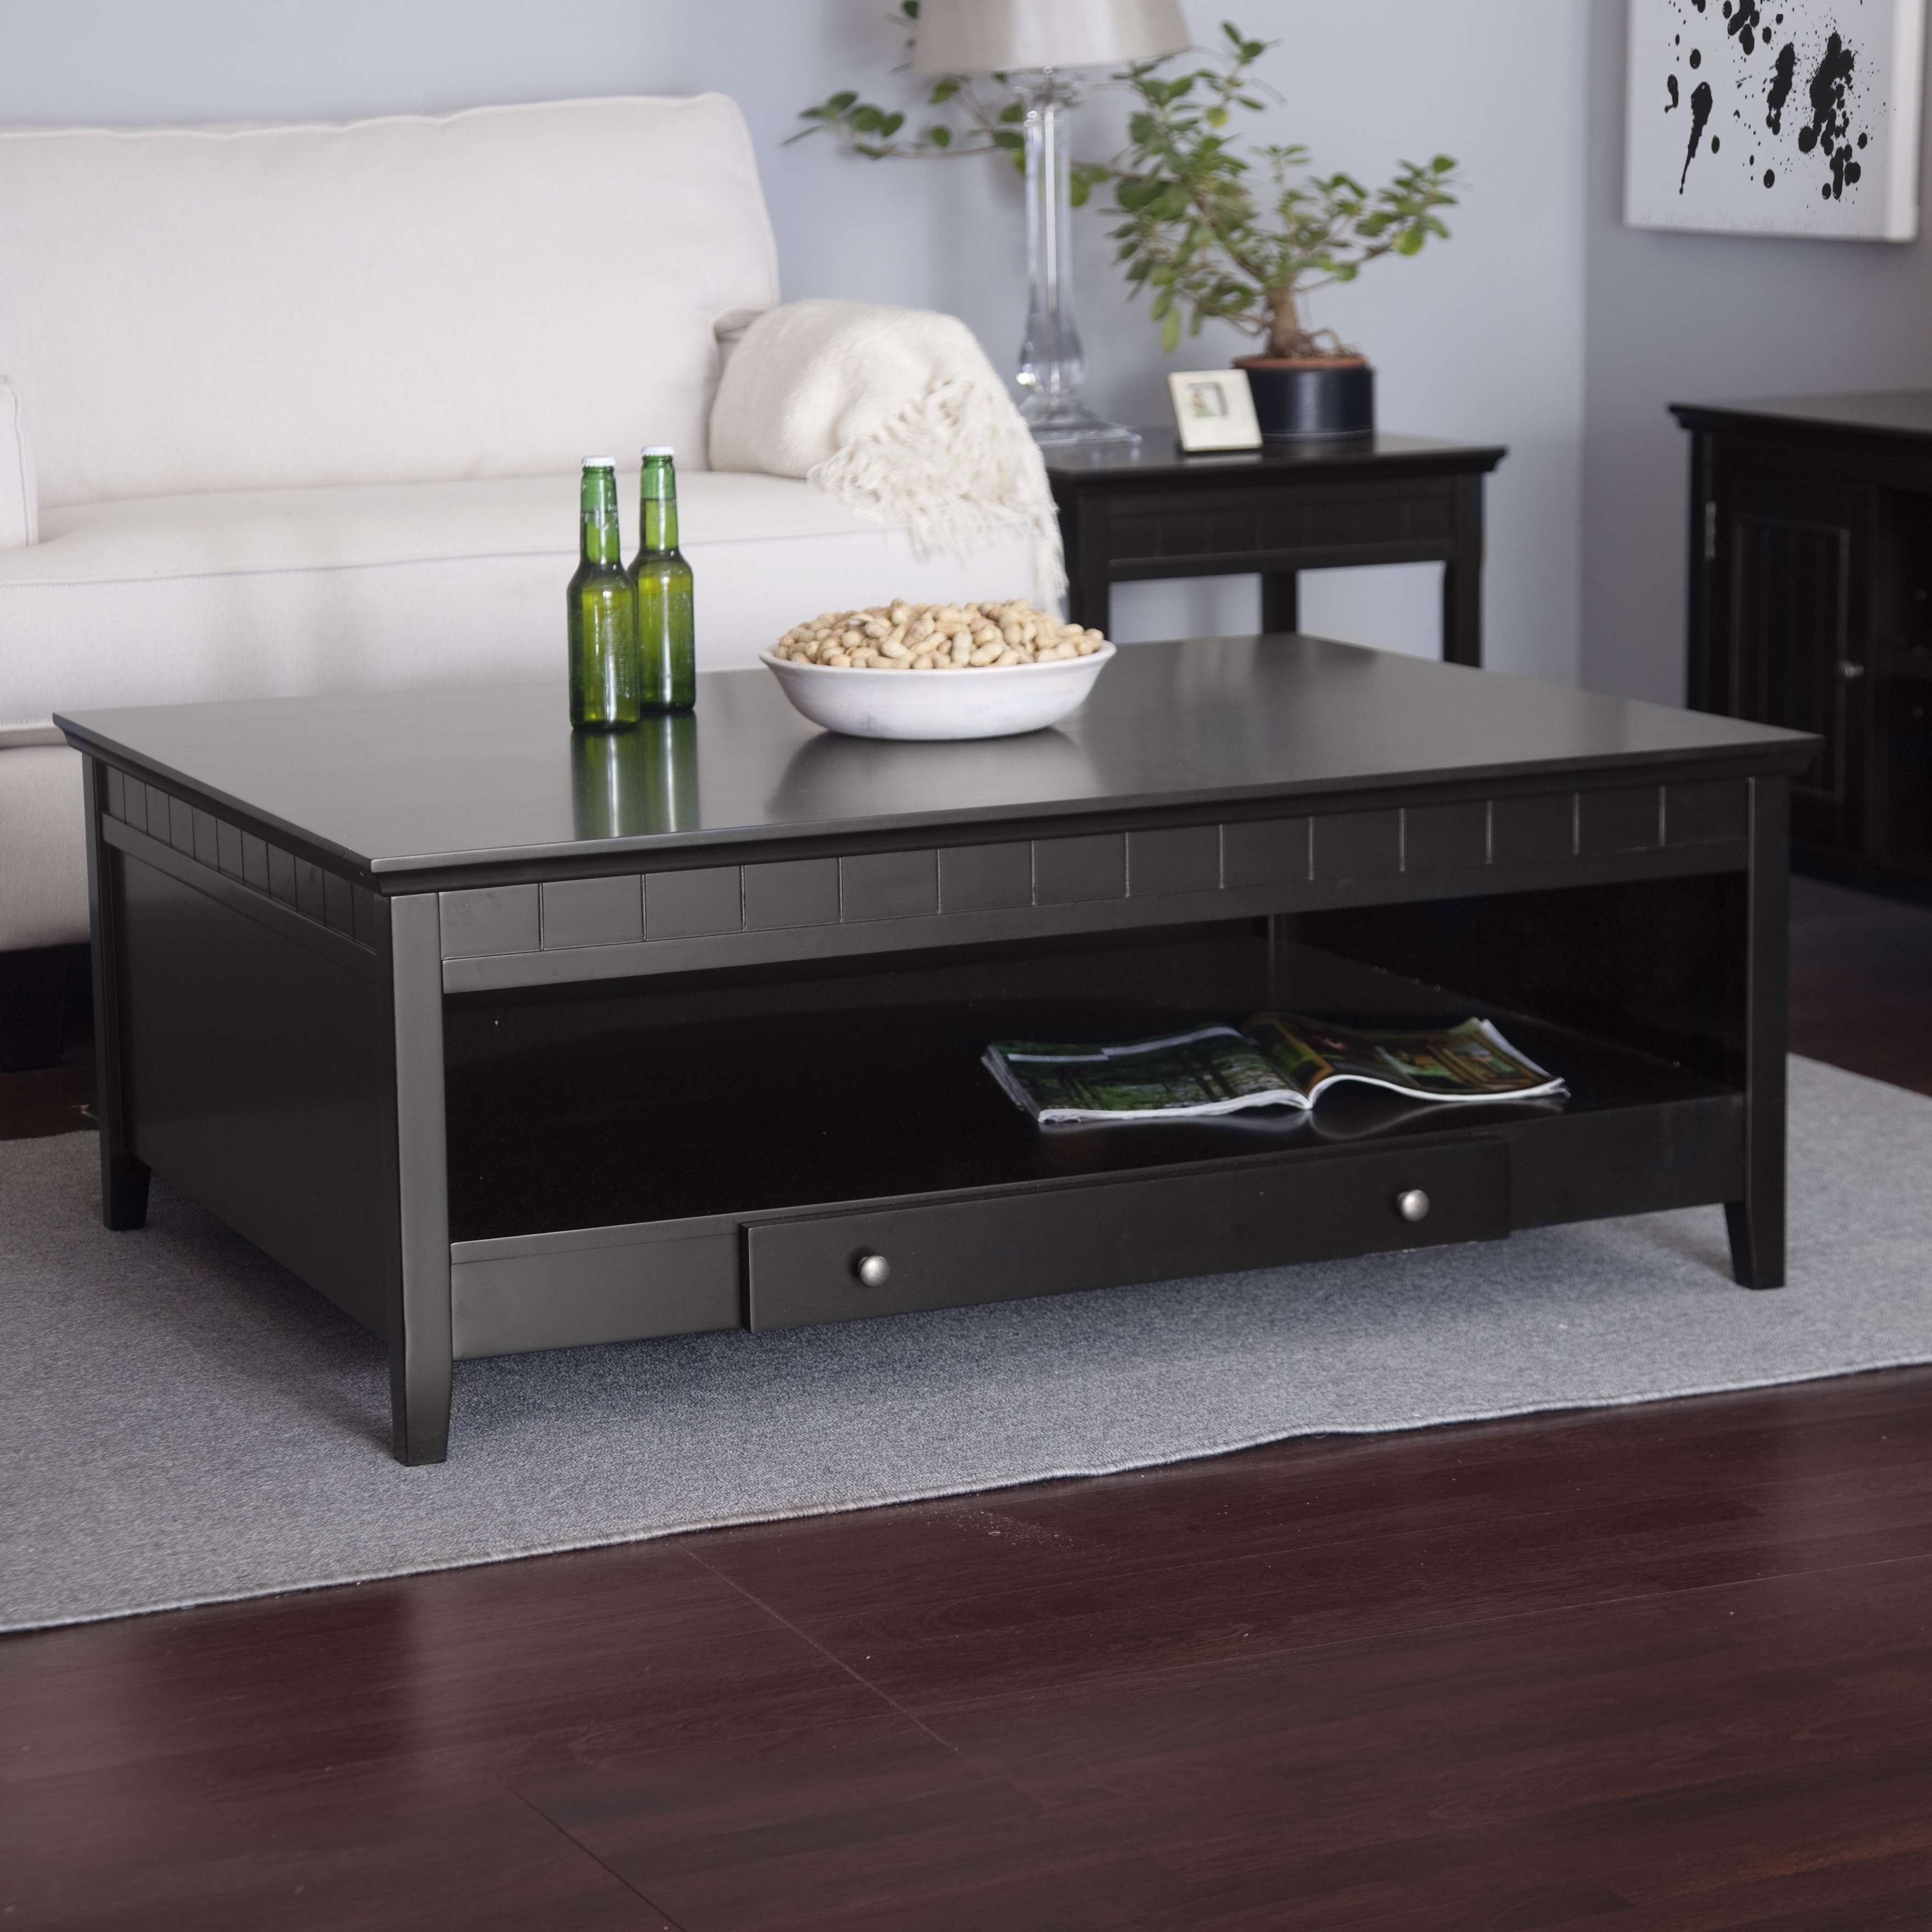 Coffee Table : Wonderful Side Table Design Round Glass Coffee Intended For Most Recently Released Dark Wood Coffee Table Storages (View 3 of 10)